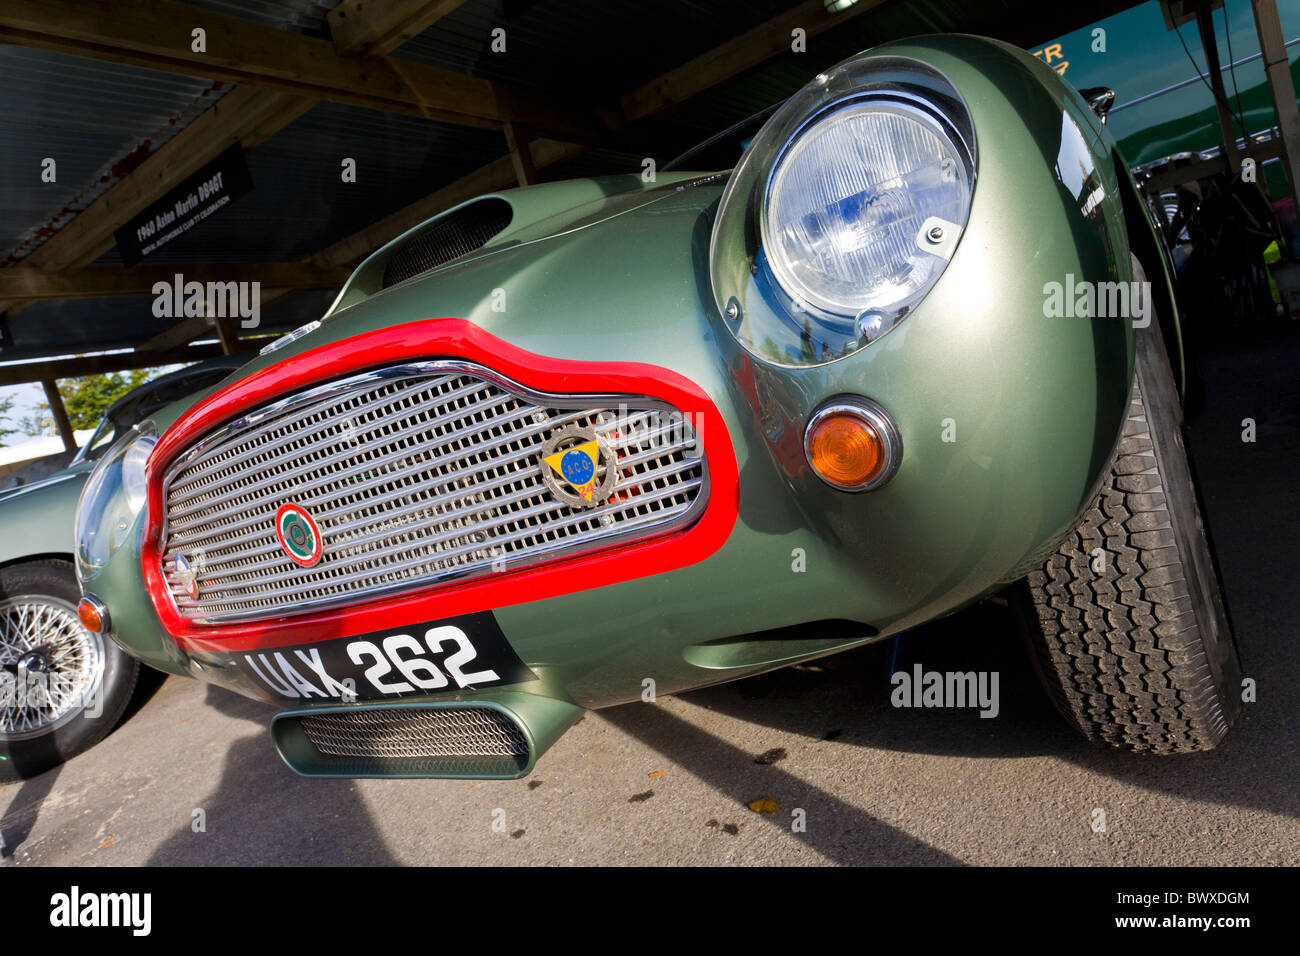 1960 Aston Martin DB4GT in the paddock at the 2010 Goodwood Revival meeting, Sussex, England, UK. - Stock Image